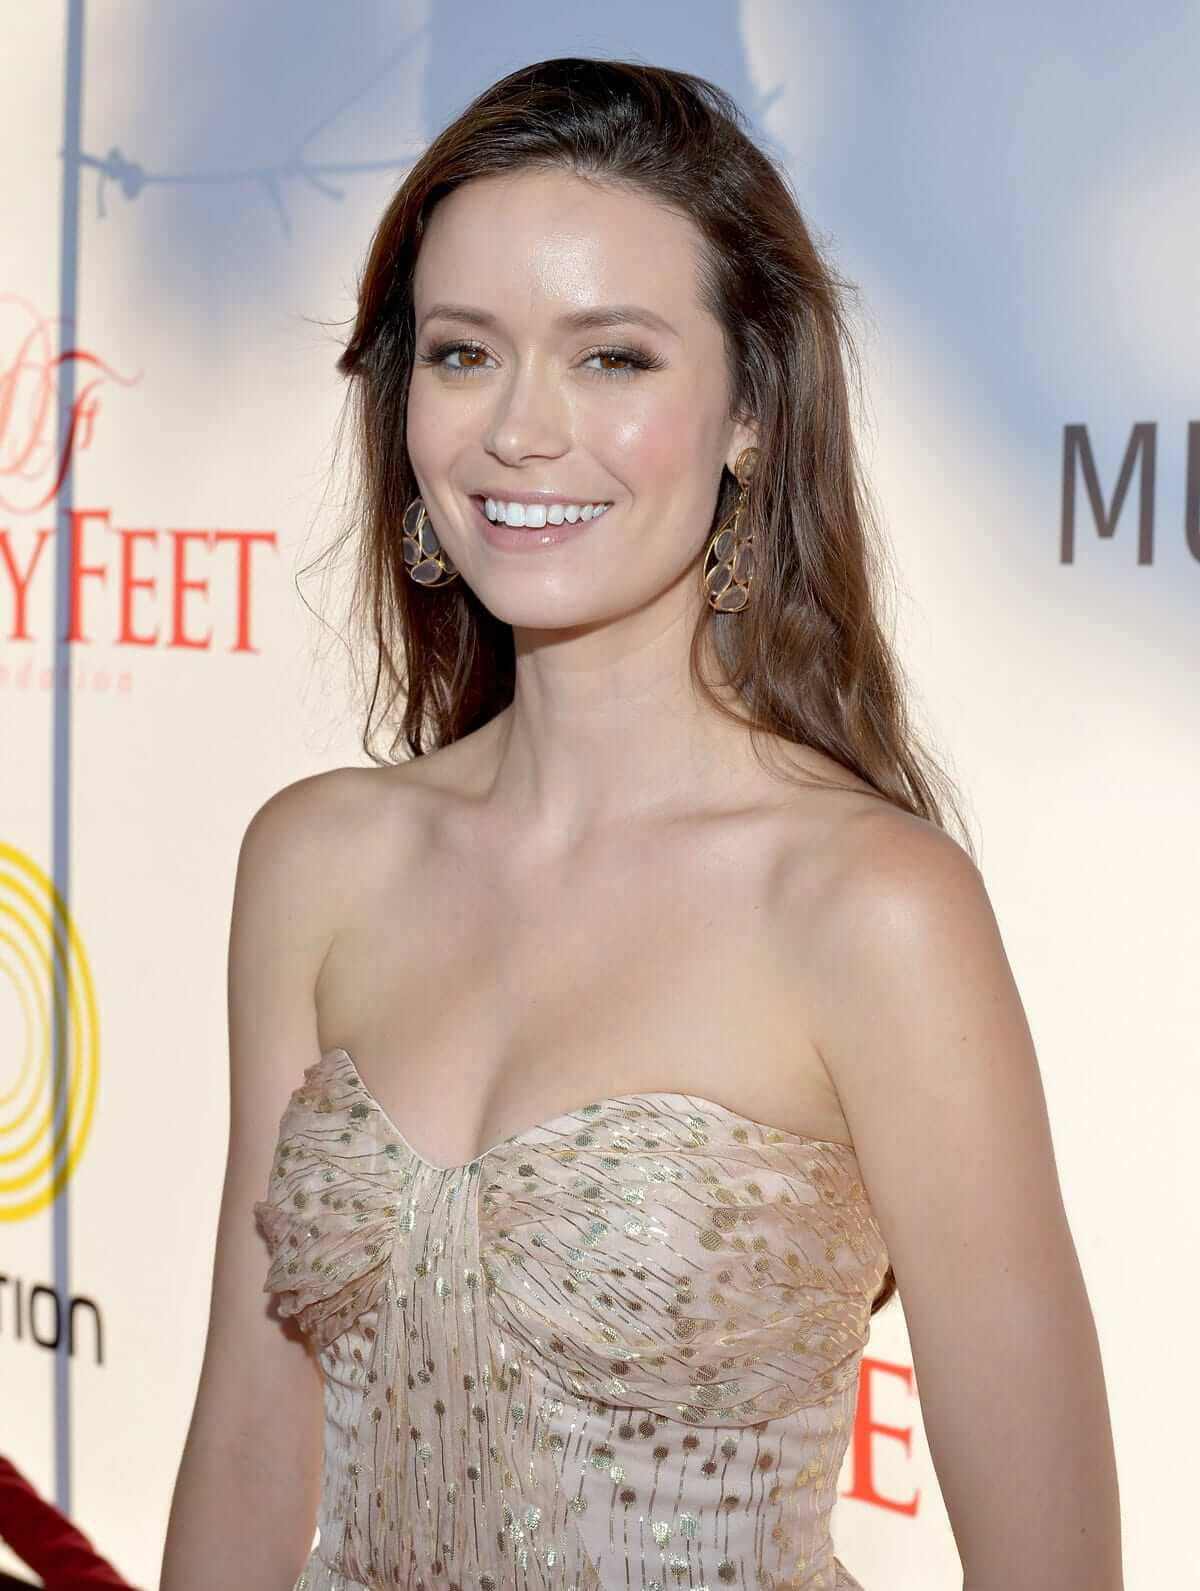 The 49 hottest Summer Glau photos will make you believe